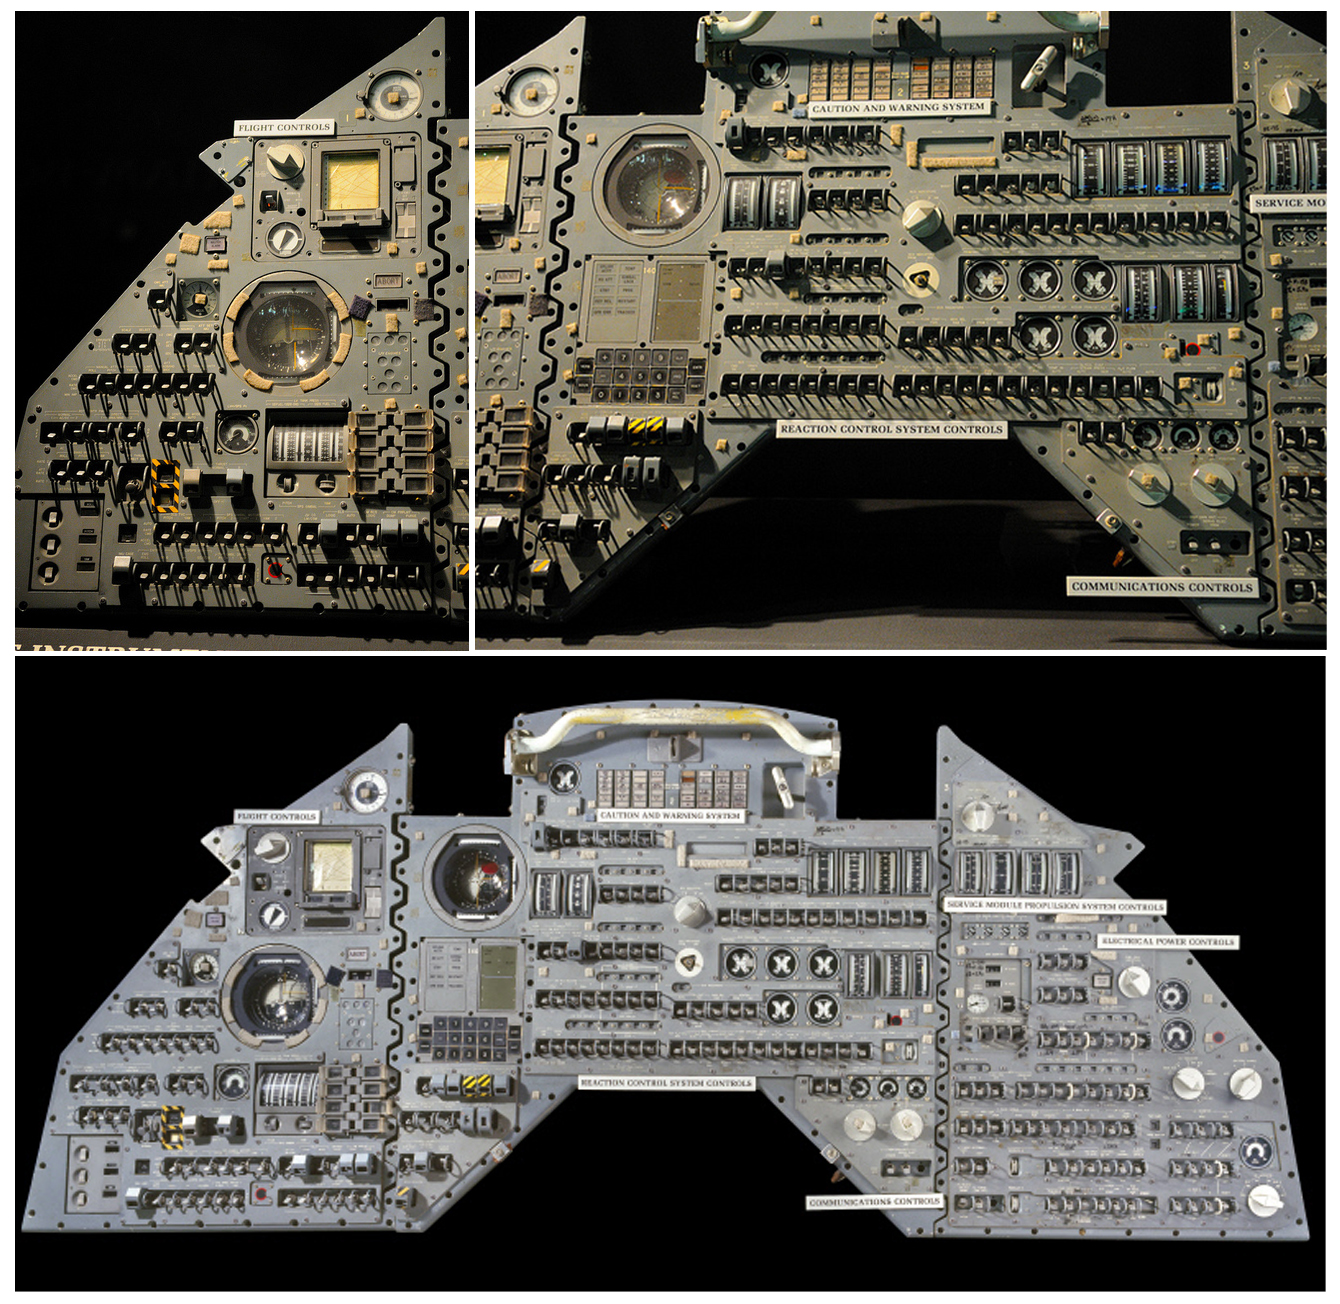 nasa shuttle cutaway cross section - photo #5